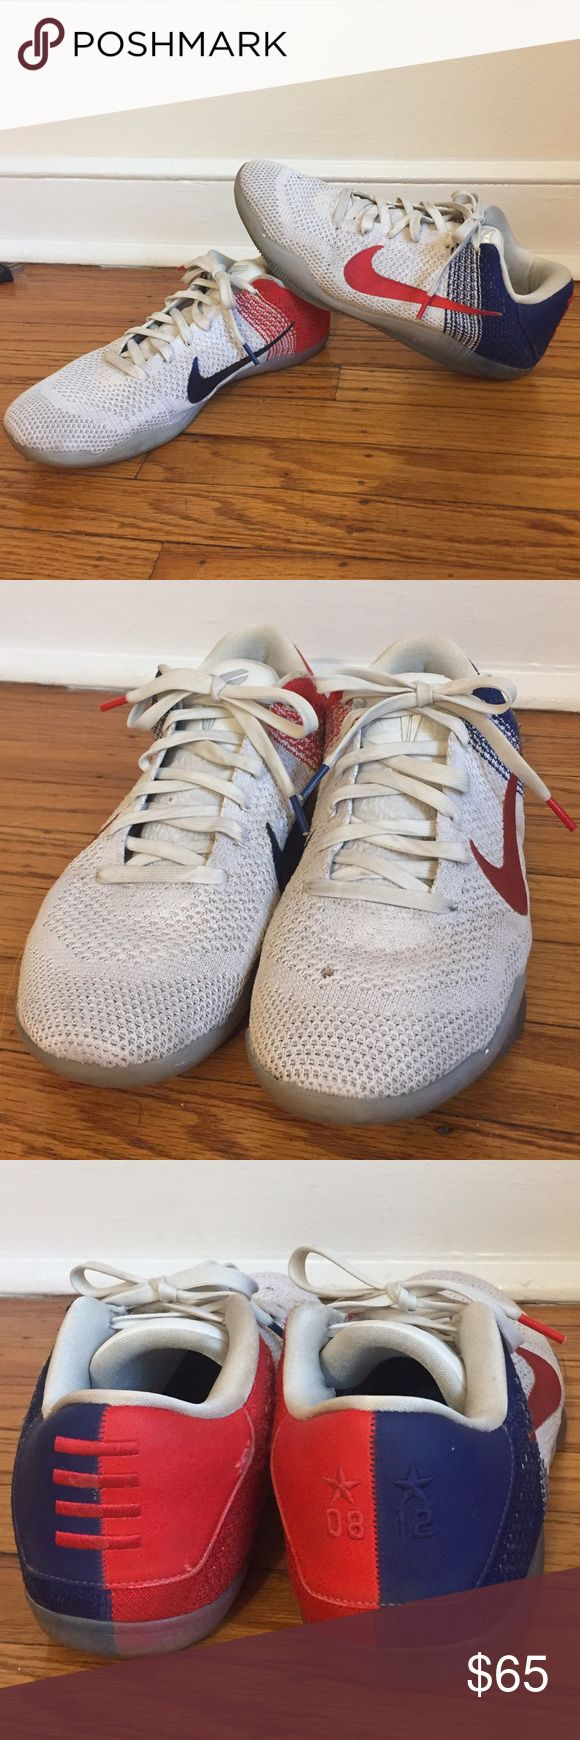 Nike Kobe Elite 11 Low Nike Kobe 11 Elite low men's basketball sneakers. Red white and blue colors, but the white is a little dirty as shown. A few other flaws as shown in the pictures. Smoke free home. Nike Shoes Sneakers